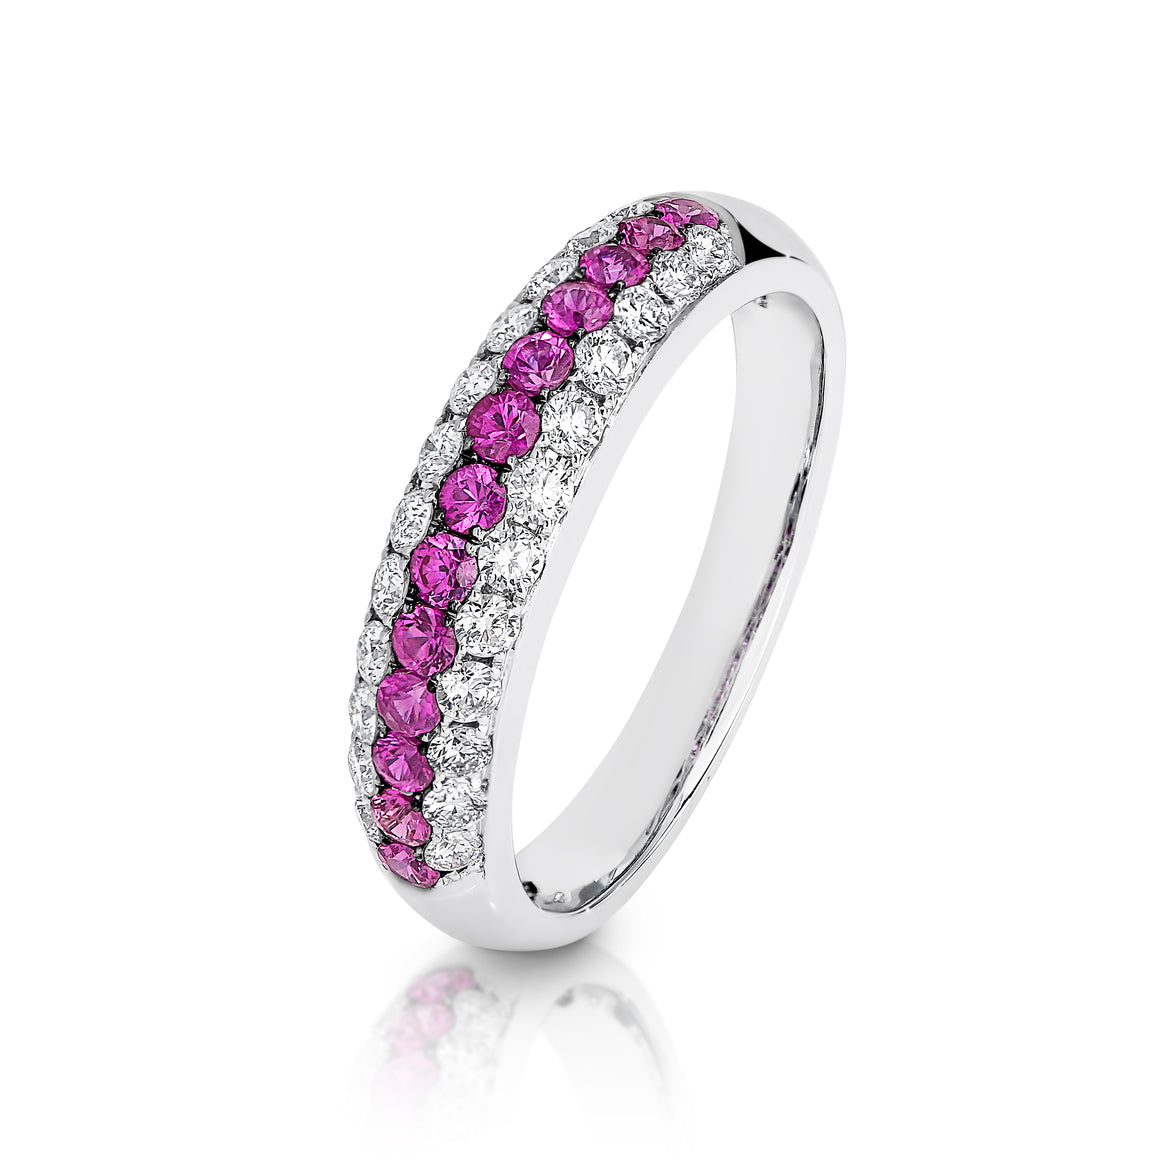 Ruby & Diamond 'Melania' Ring - Gemma Stone  ABN:51 621 127 866